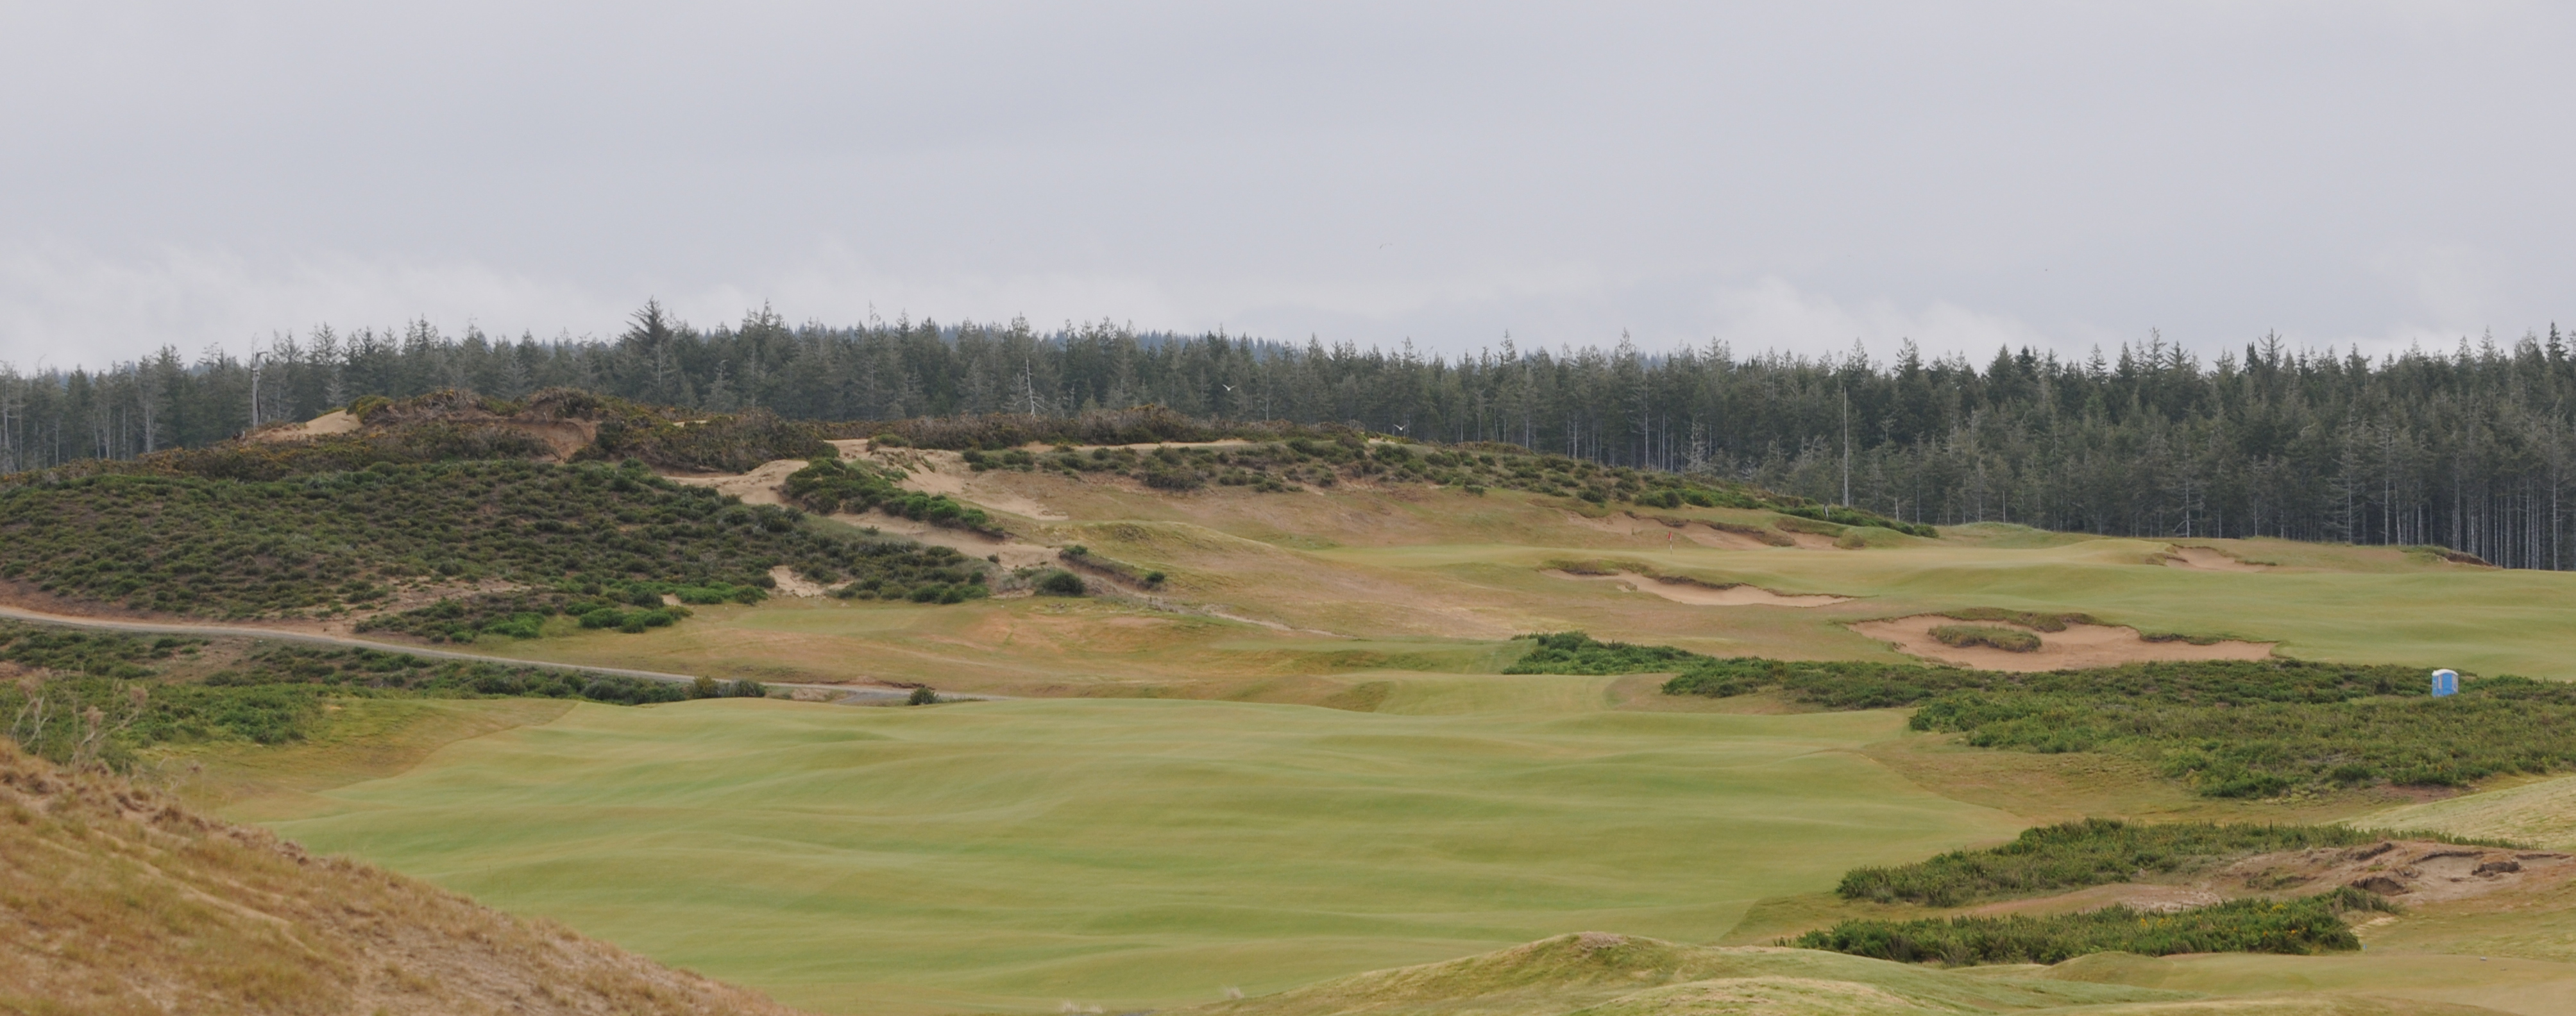 No. 15 at Old Macdonald